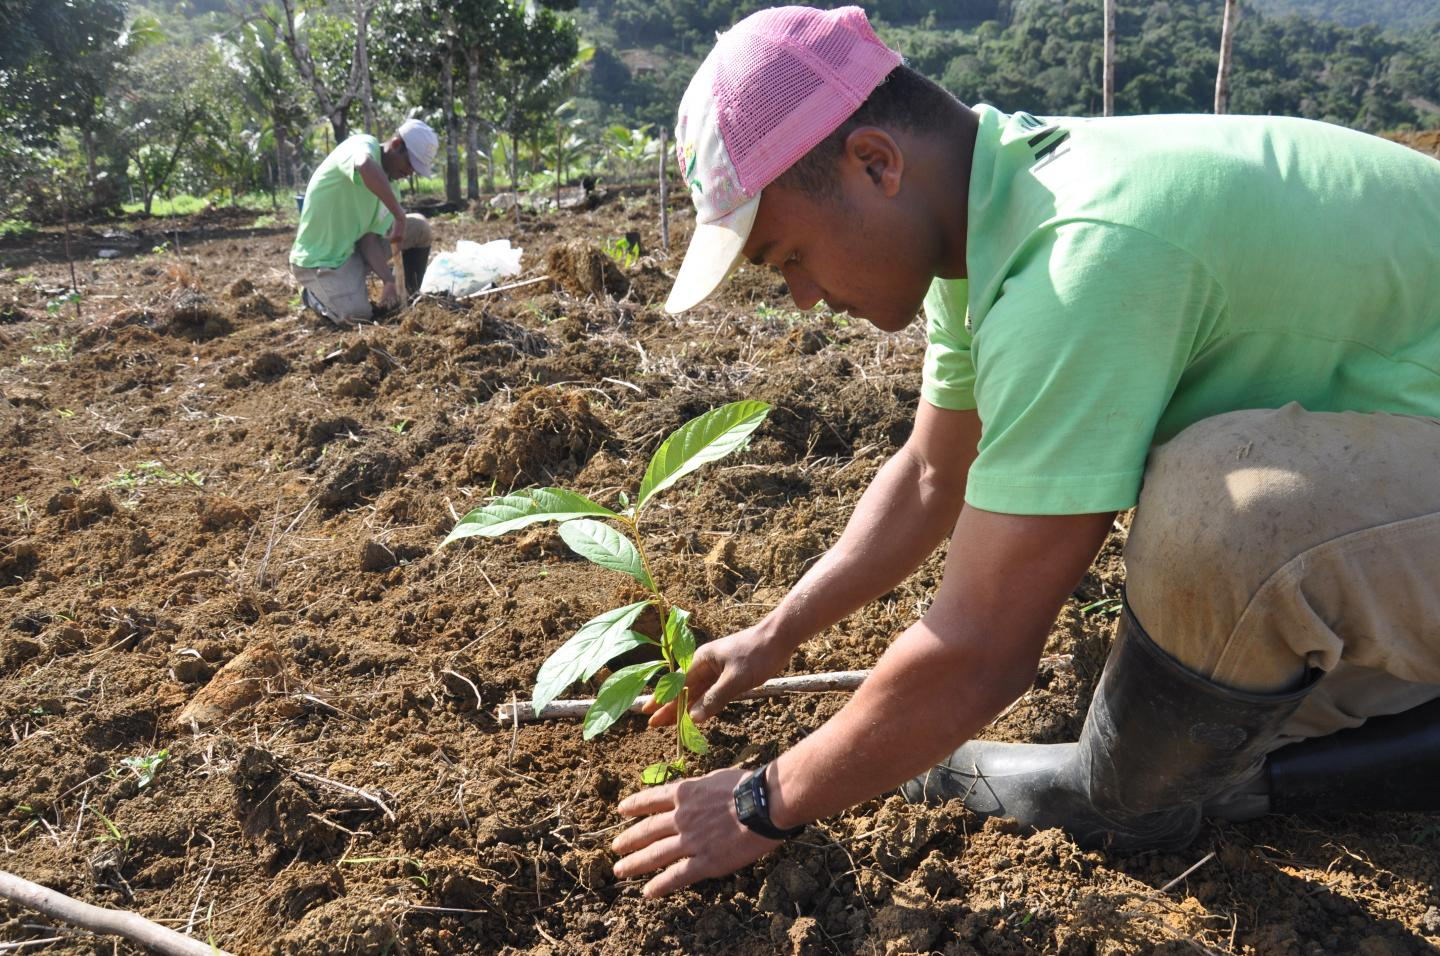 Planting Trees Is No Panacea for Climate Change